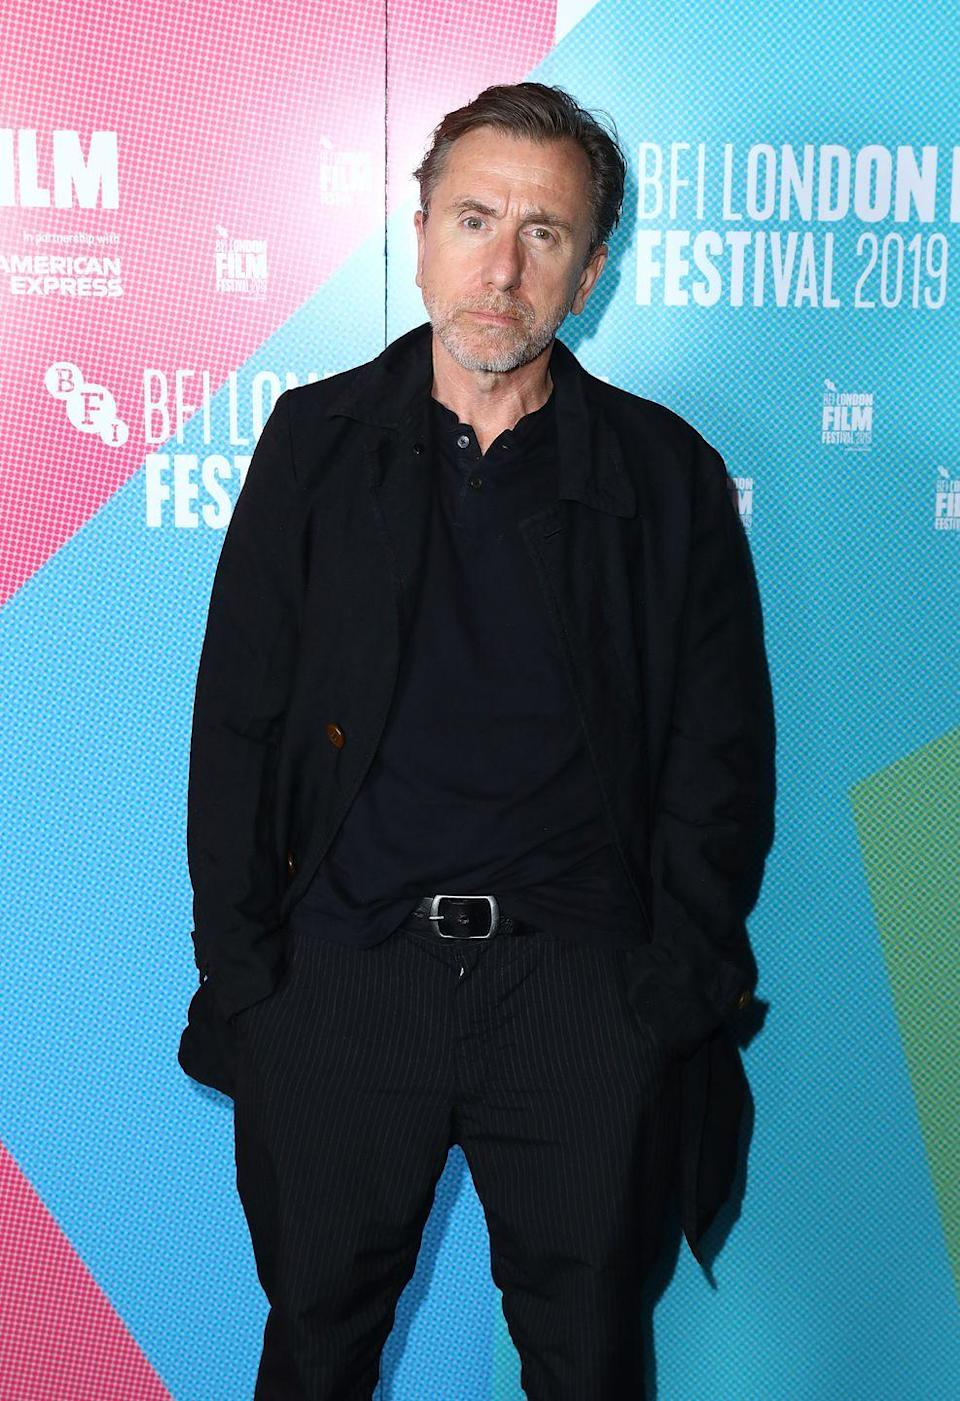 """<p>We would have loved to have seen Tim Roth the Quentin Tarantino film—the British actor <a href=""""https://www.nme.com/news/quentin-tarantino-reveals-tim-roth-character-identity-once-upon-a-time-in-hollywood-2540829"""" rel=""""nofollow noopener"""" target=""""_blank"""" data-ylk=""""slk:filmed scenes as Jay Sebring's butler"""" class=""""link rapid-noclick-resp"""">filmed scenes as Jay Sebring's butler</a>. However, Tarantino had to axe Roth's storyline due to time, but we may get to see his performance some day in an extended version of the movie.</p>"""